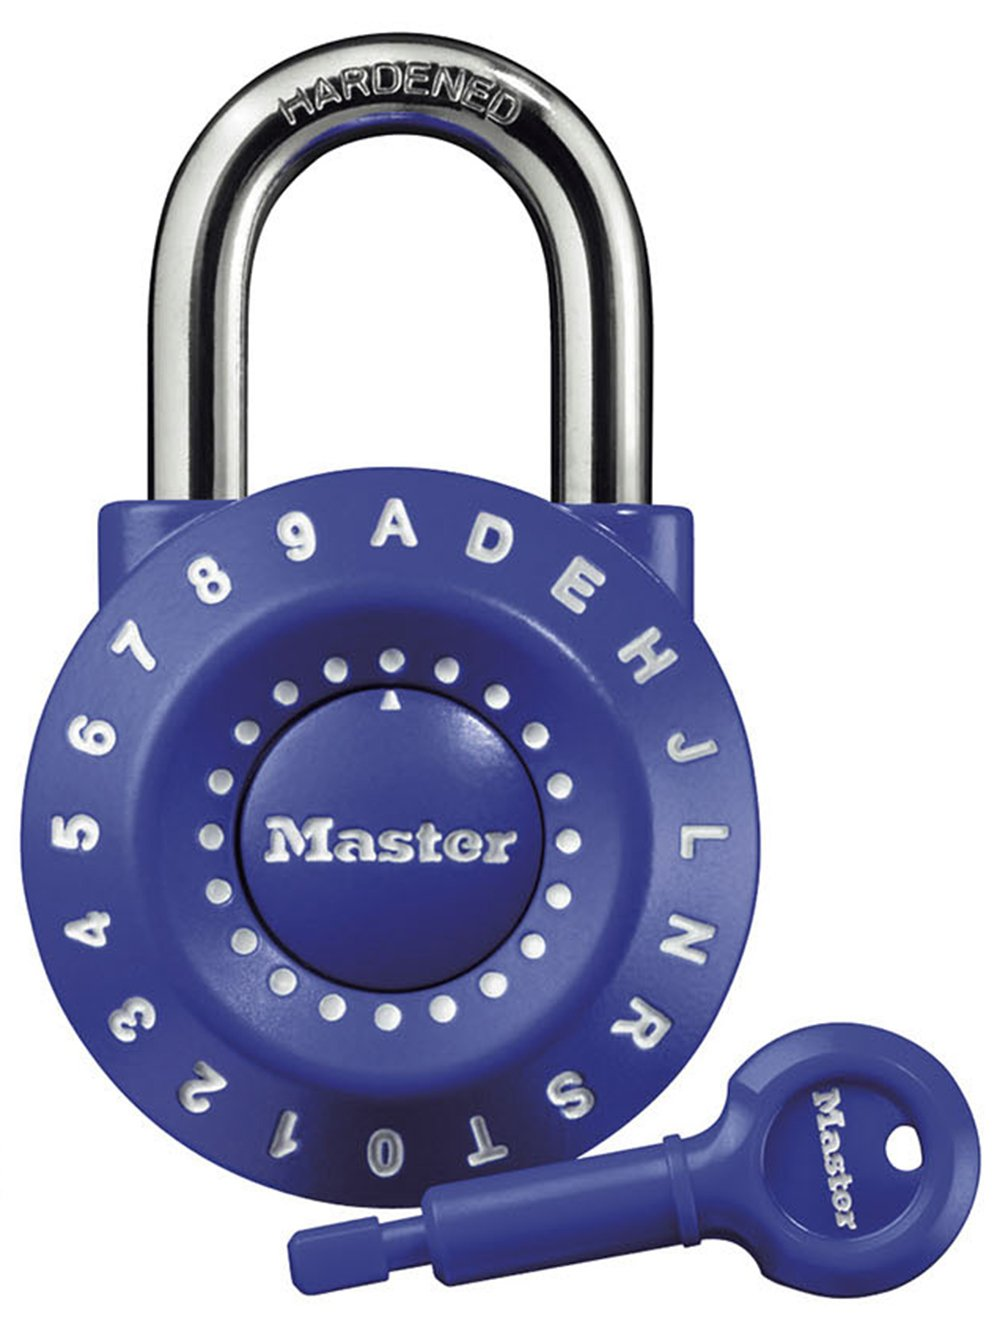 Master Lock Padlock, Set Your Own Combination Lock, 1-15/16 in. Wide, Assorted Colors, 1590D